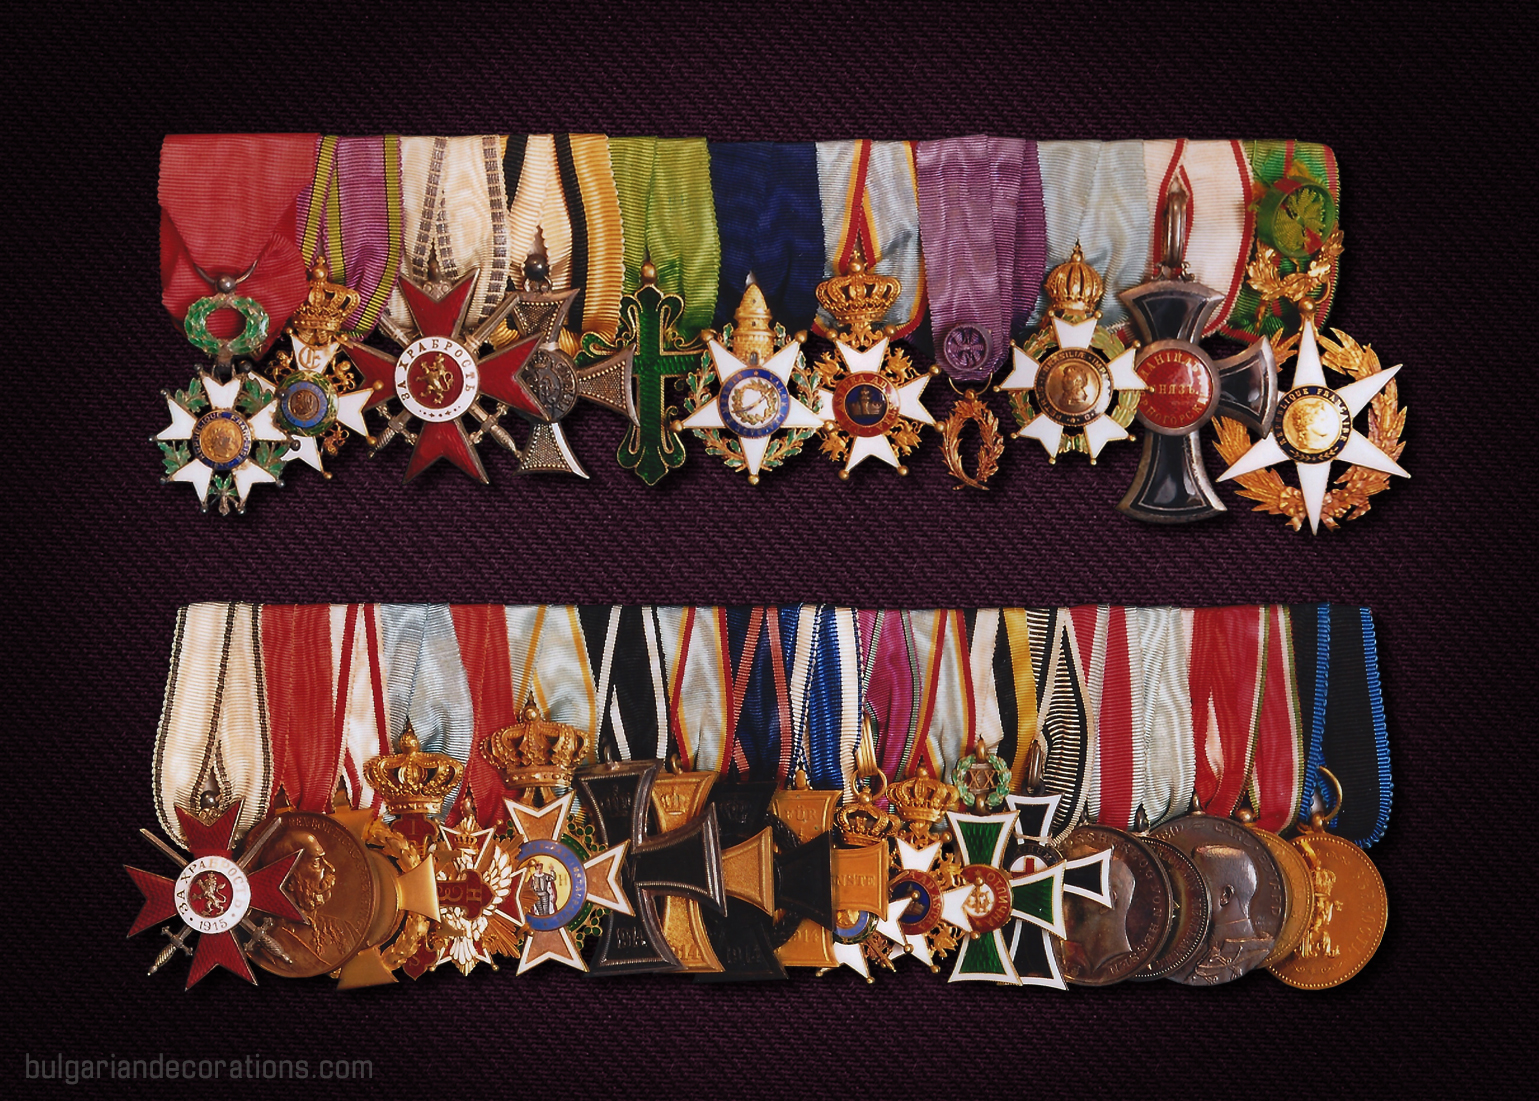 Groups of decorations worn by Ferdinand I - as Prince (1st bar) and King (2nd bar)